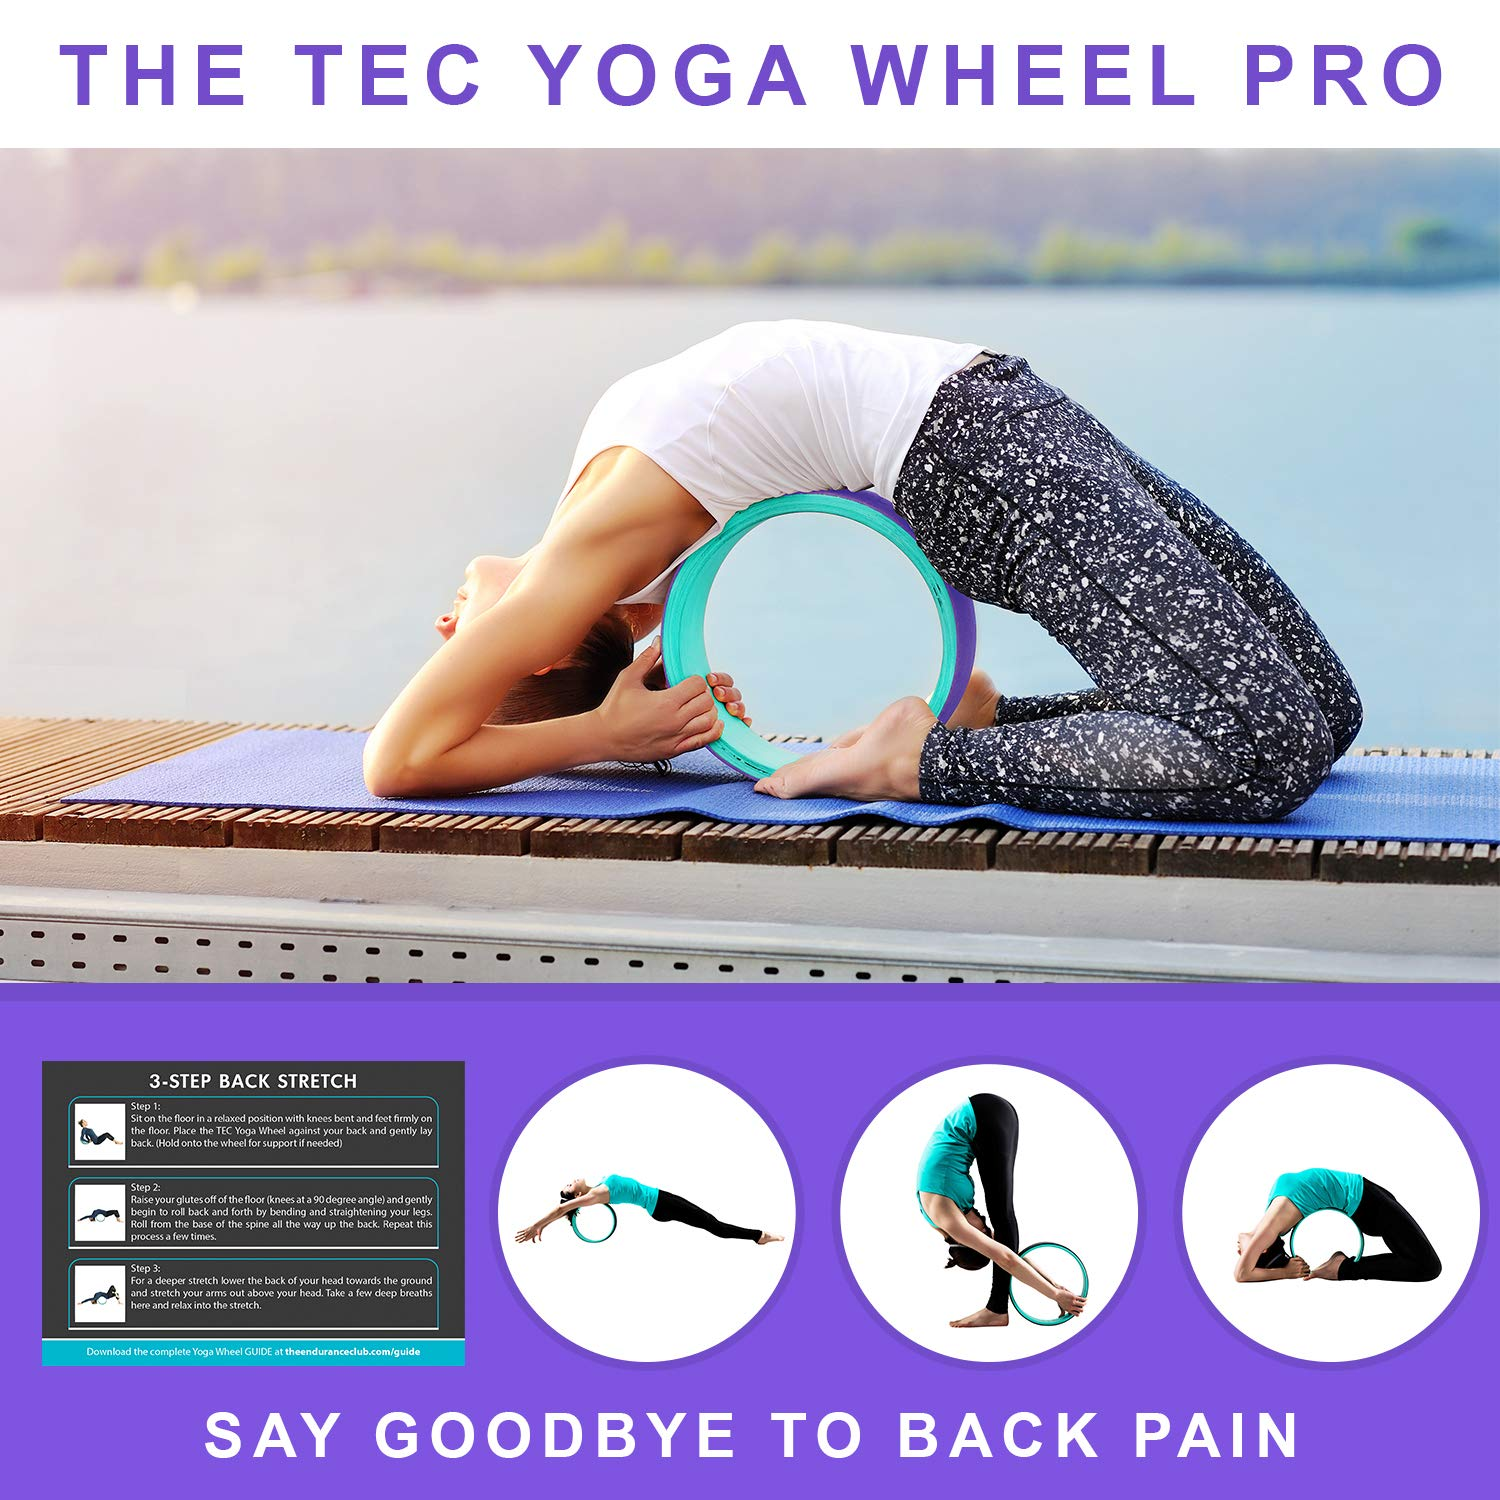 TEC Yoga Wheel Pro - Strong, Comfortable 13